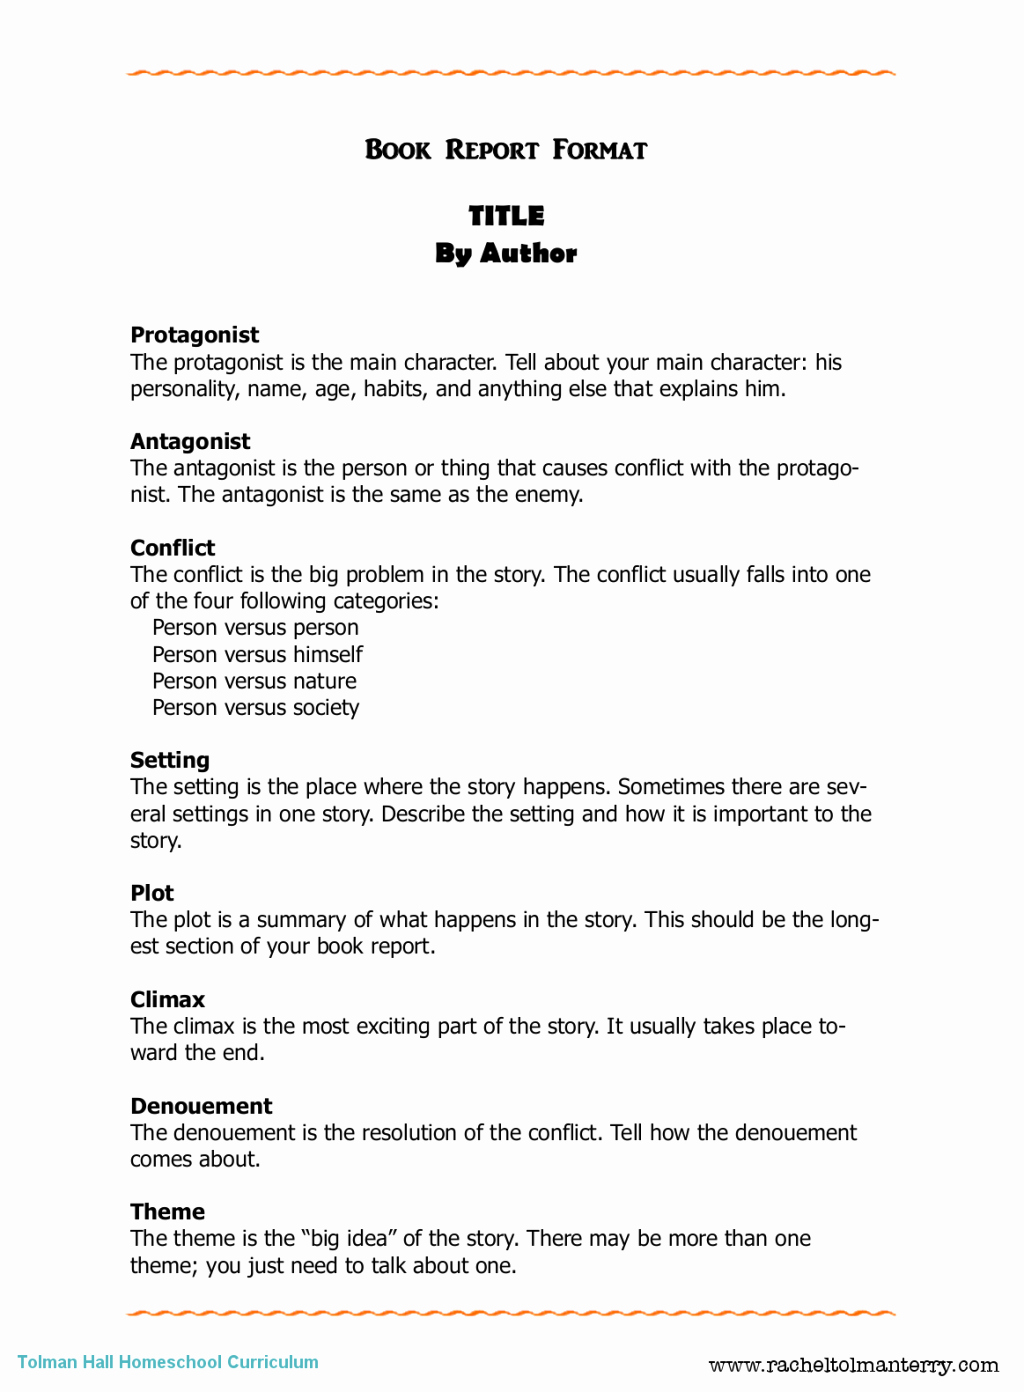 Non Fiction Book Report Template Awesome Book Report Template Collegeevel Non Fiction Elementary